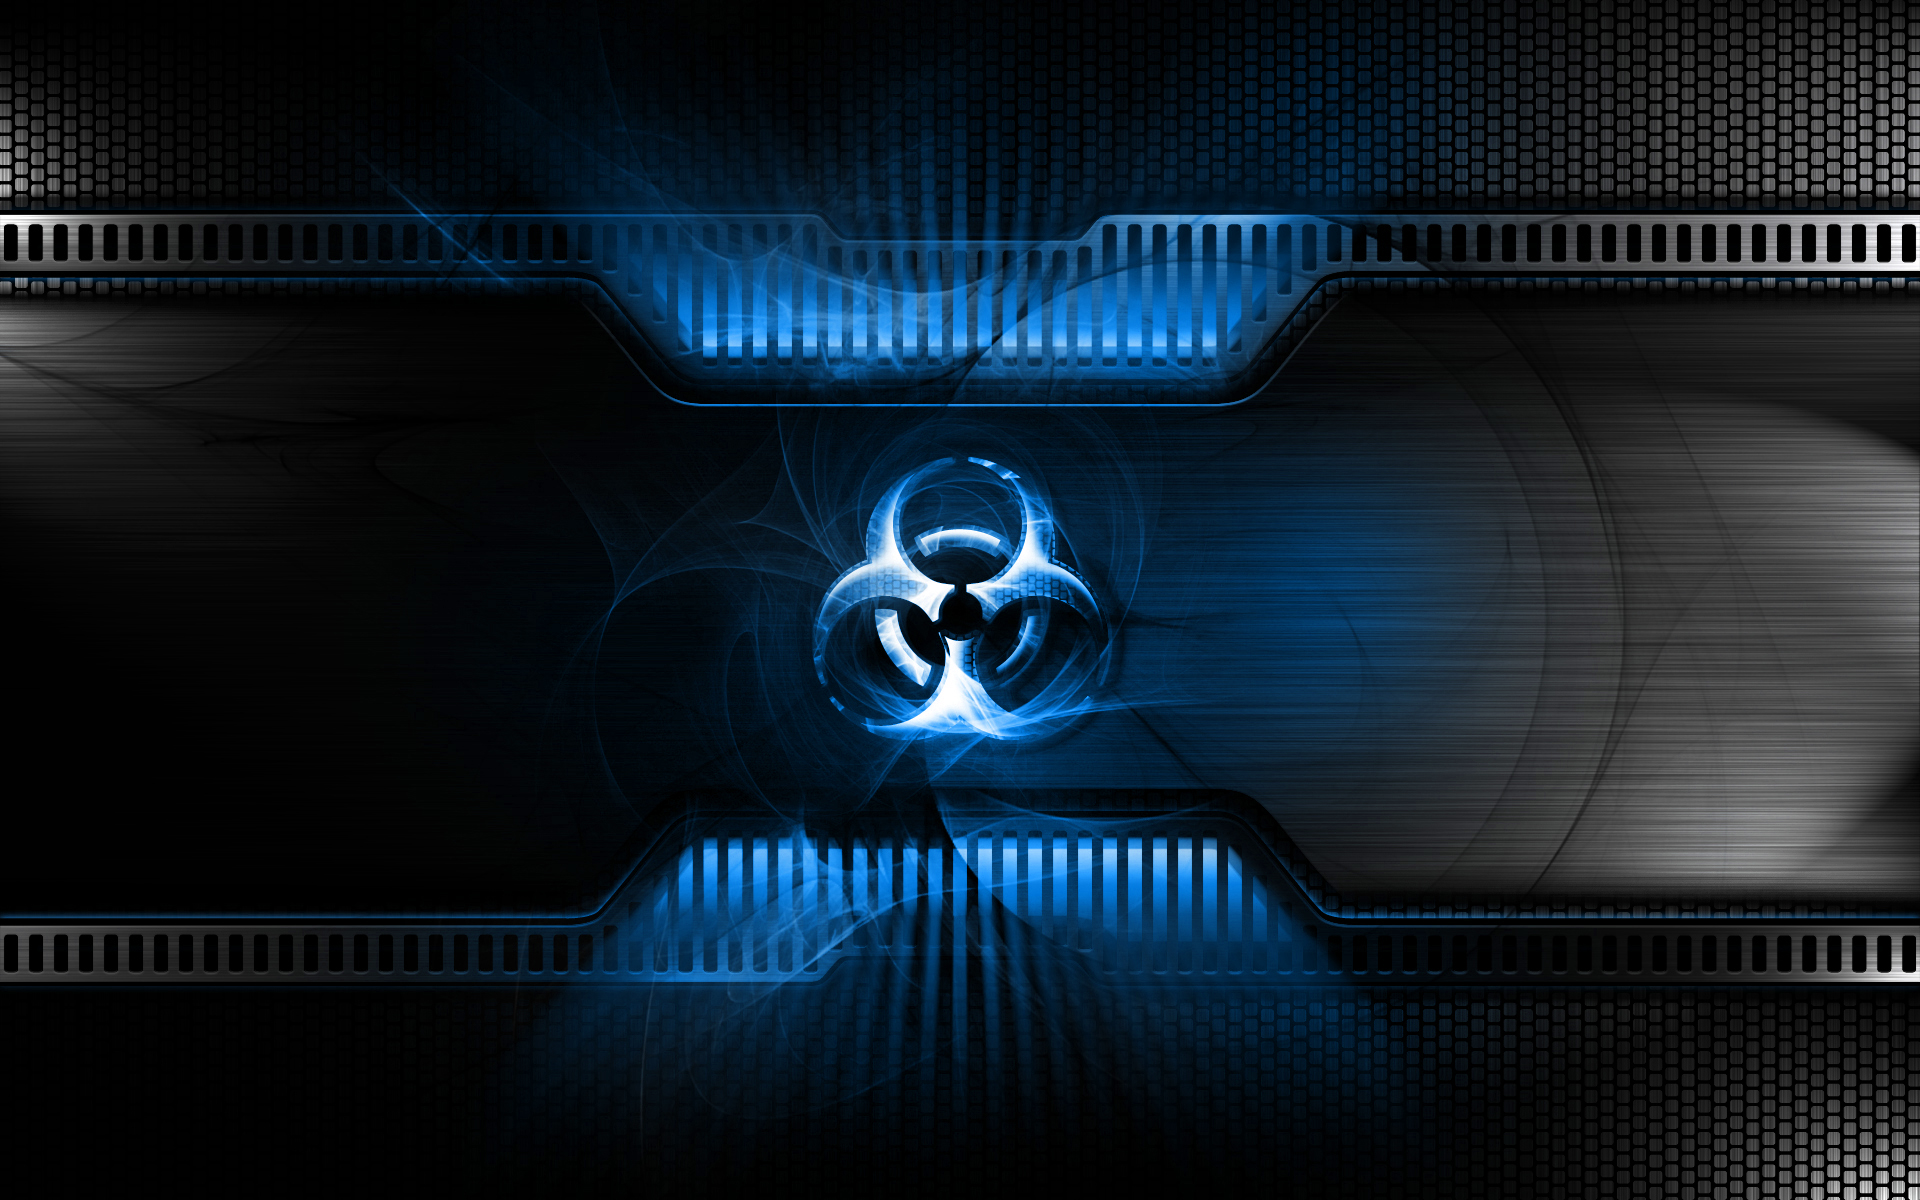 45 Hi Tech Wallpapers For Desktop and Laptops 1920x1200